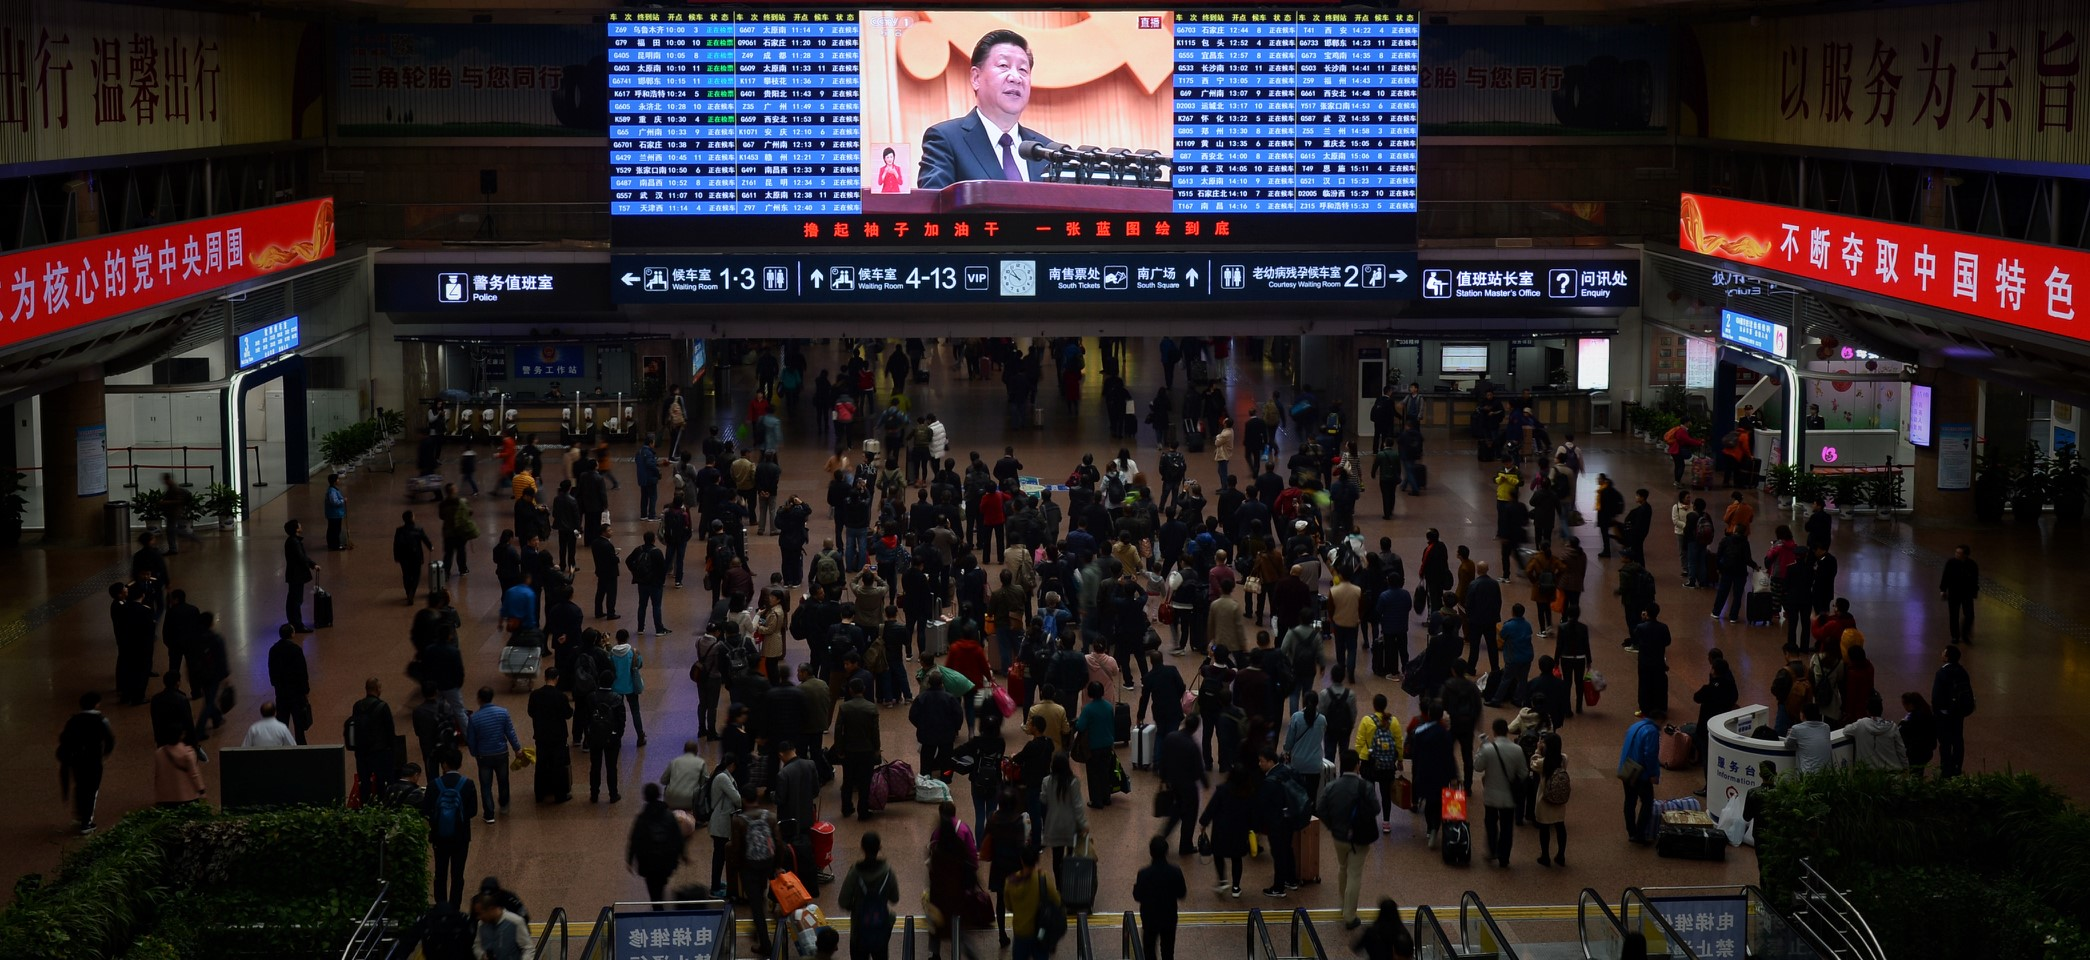 Passengers watch a broadcast of the opening ceremony for the 19th Party Congress at a Beijing railway station, October 2017 (Photo: VCG/Getty Images)